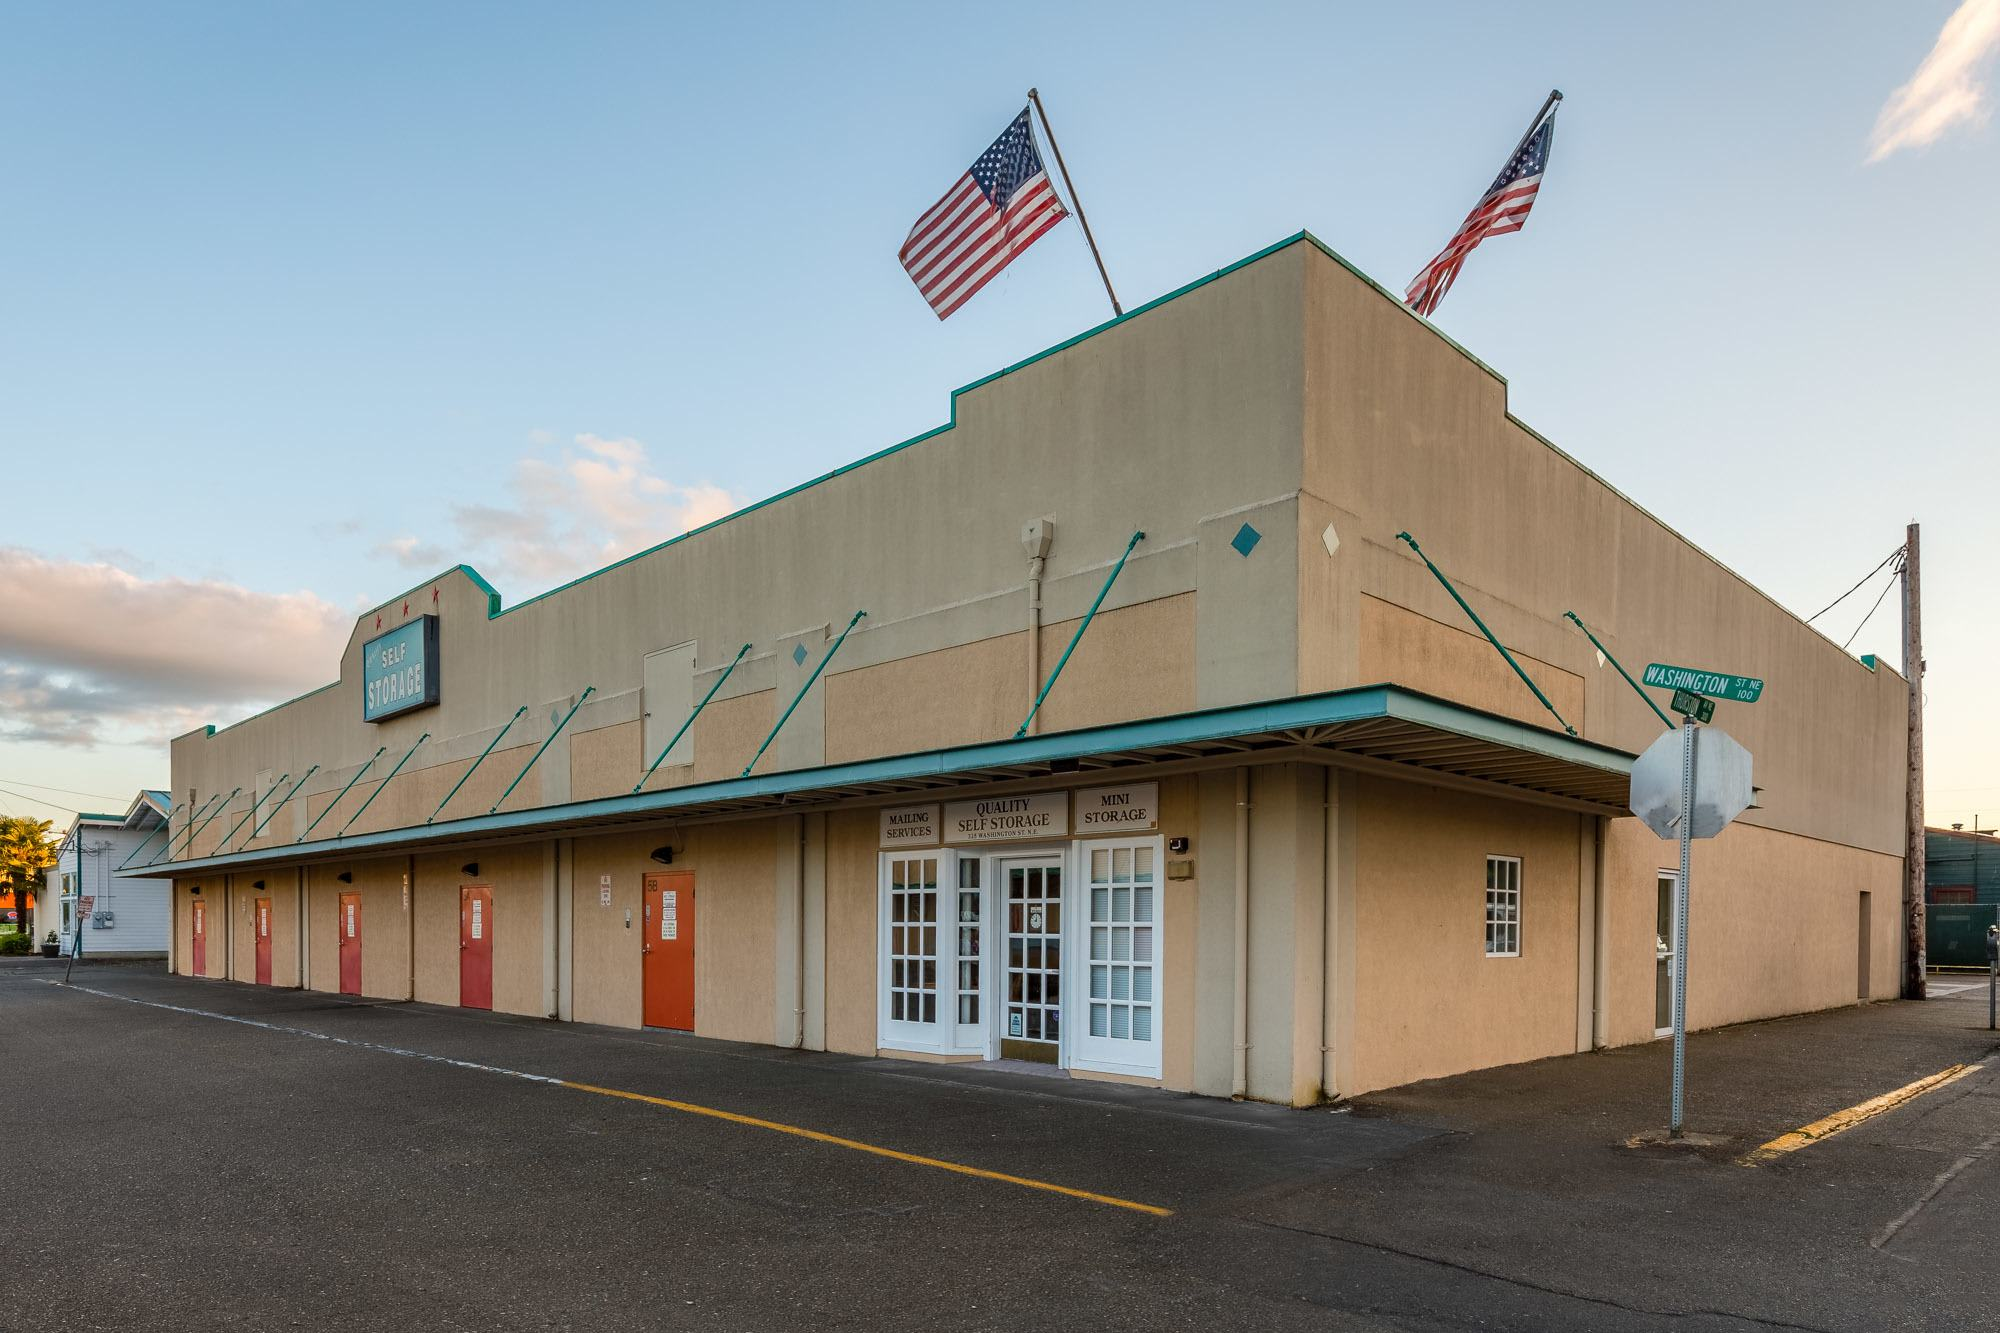 Exterior of self storage facility in Olympia, Washington